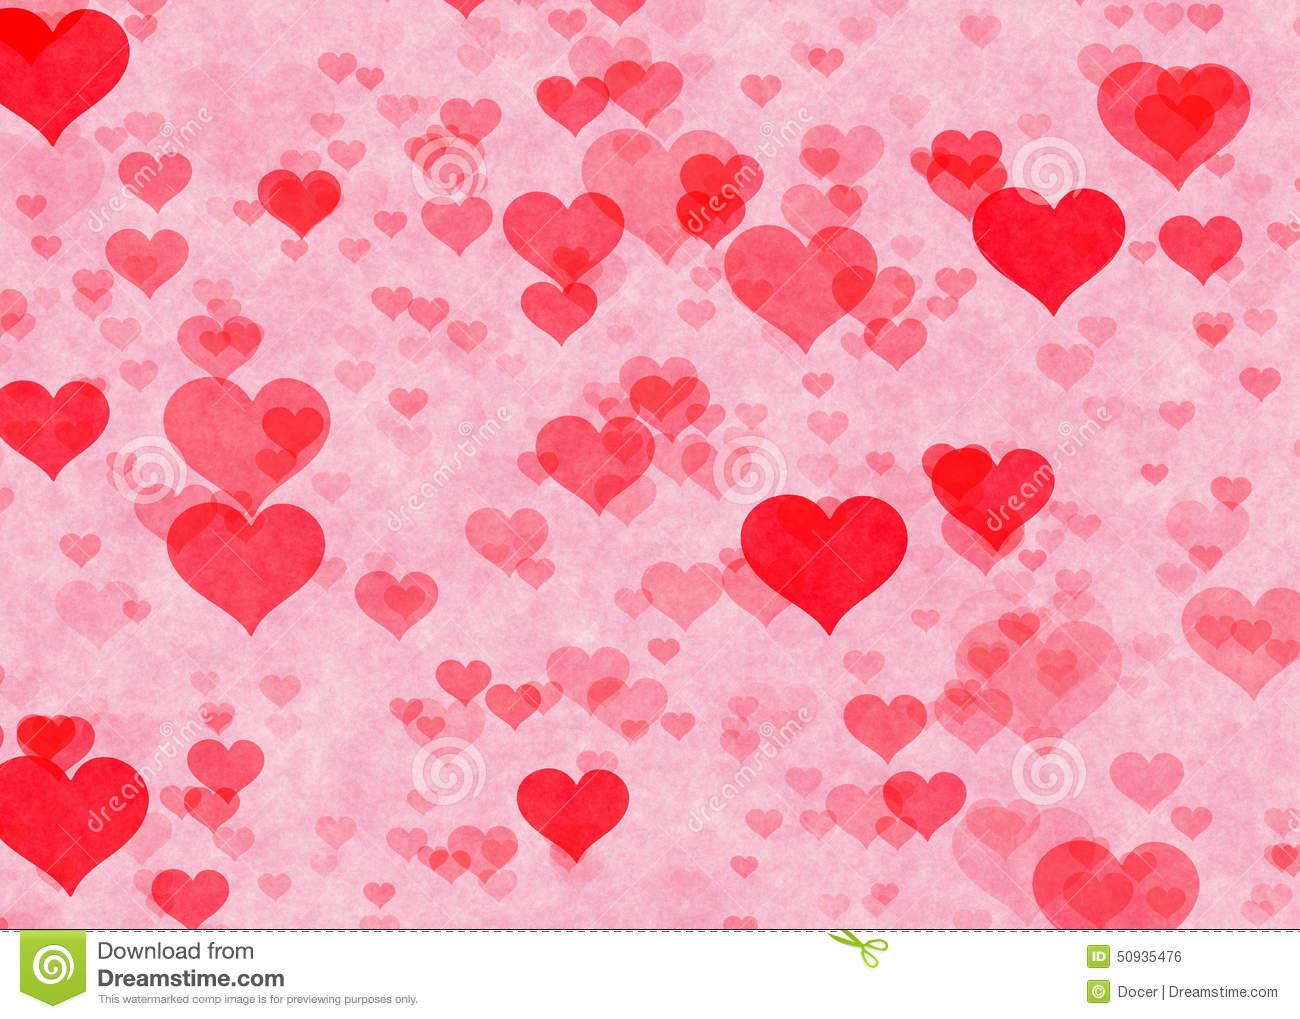 Red Hearts Backgrounds Love Textures Stock Illustration